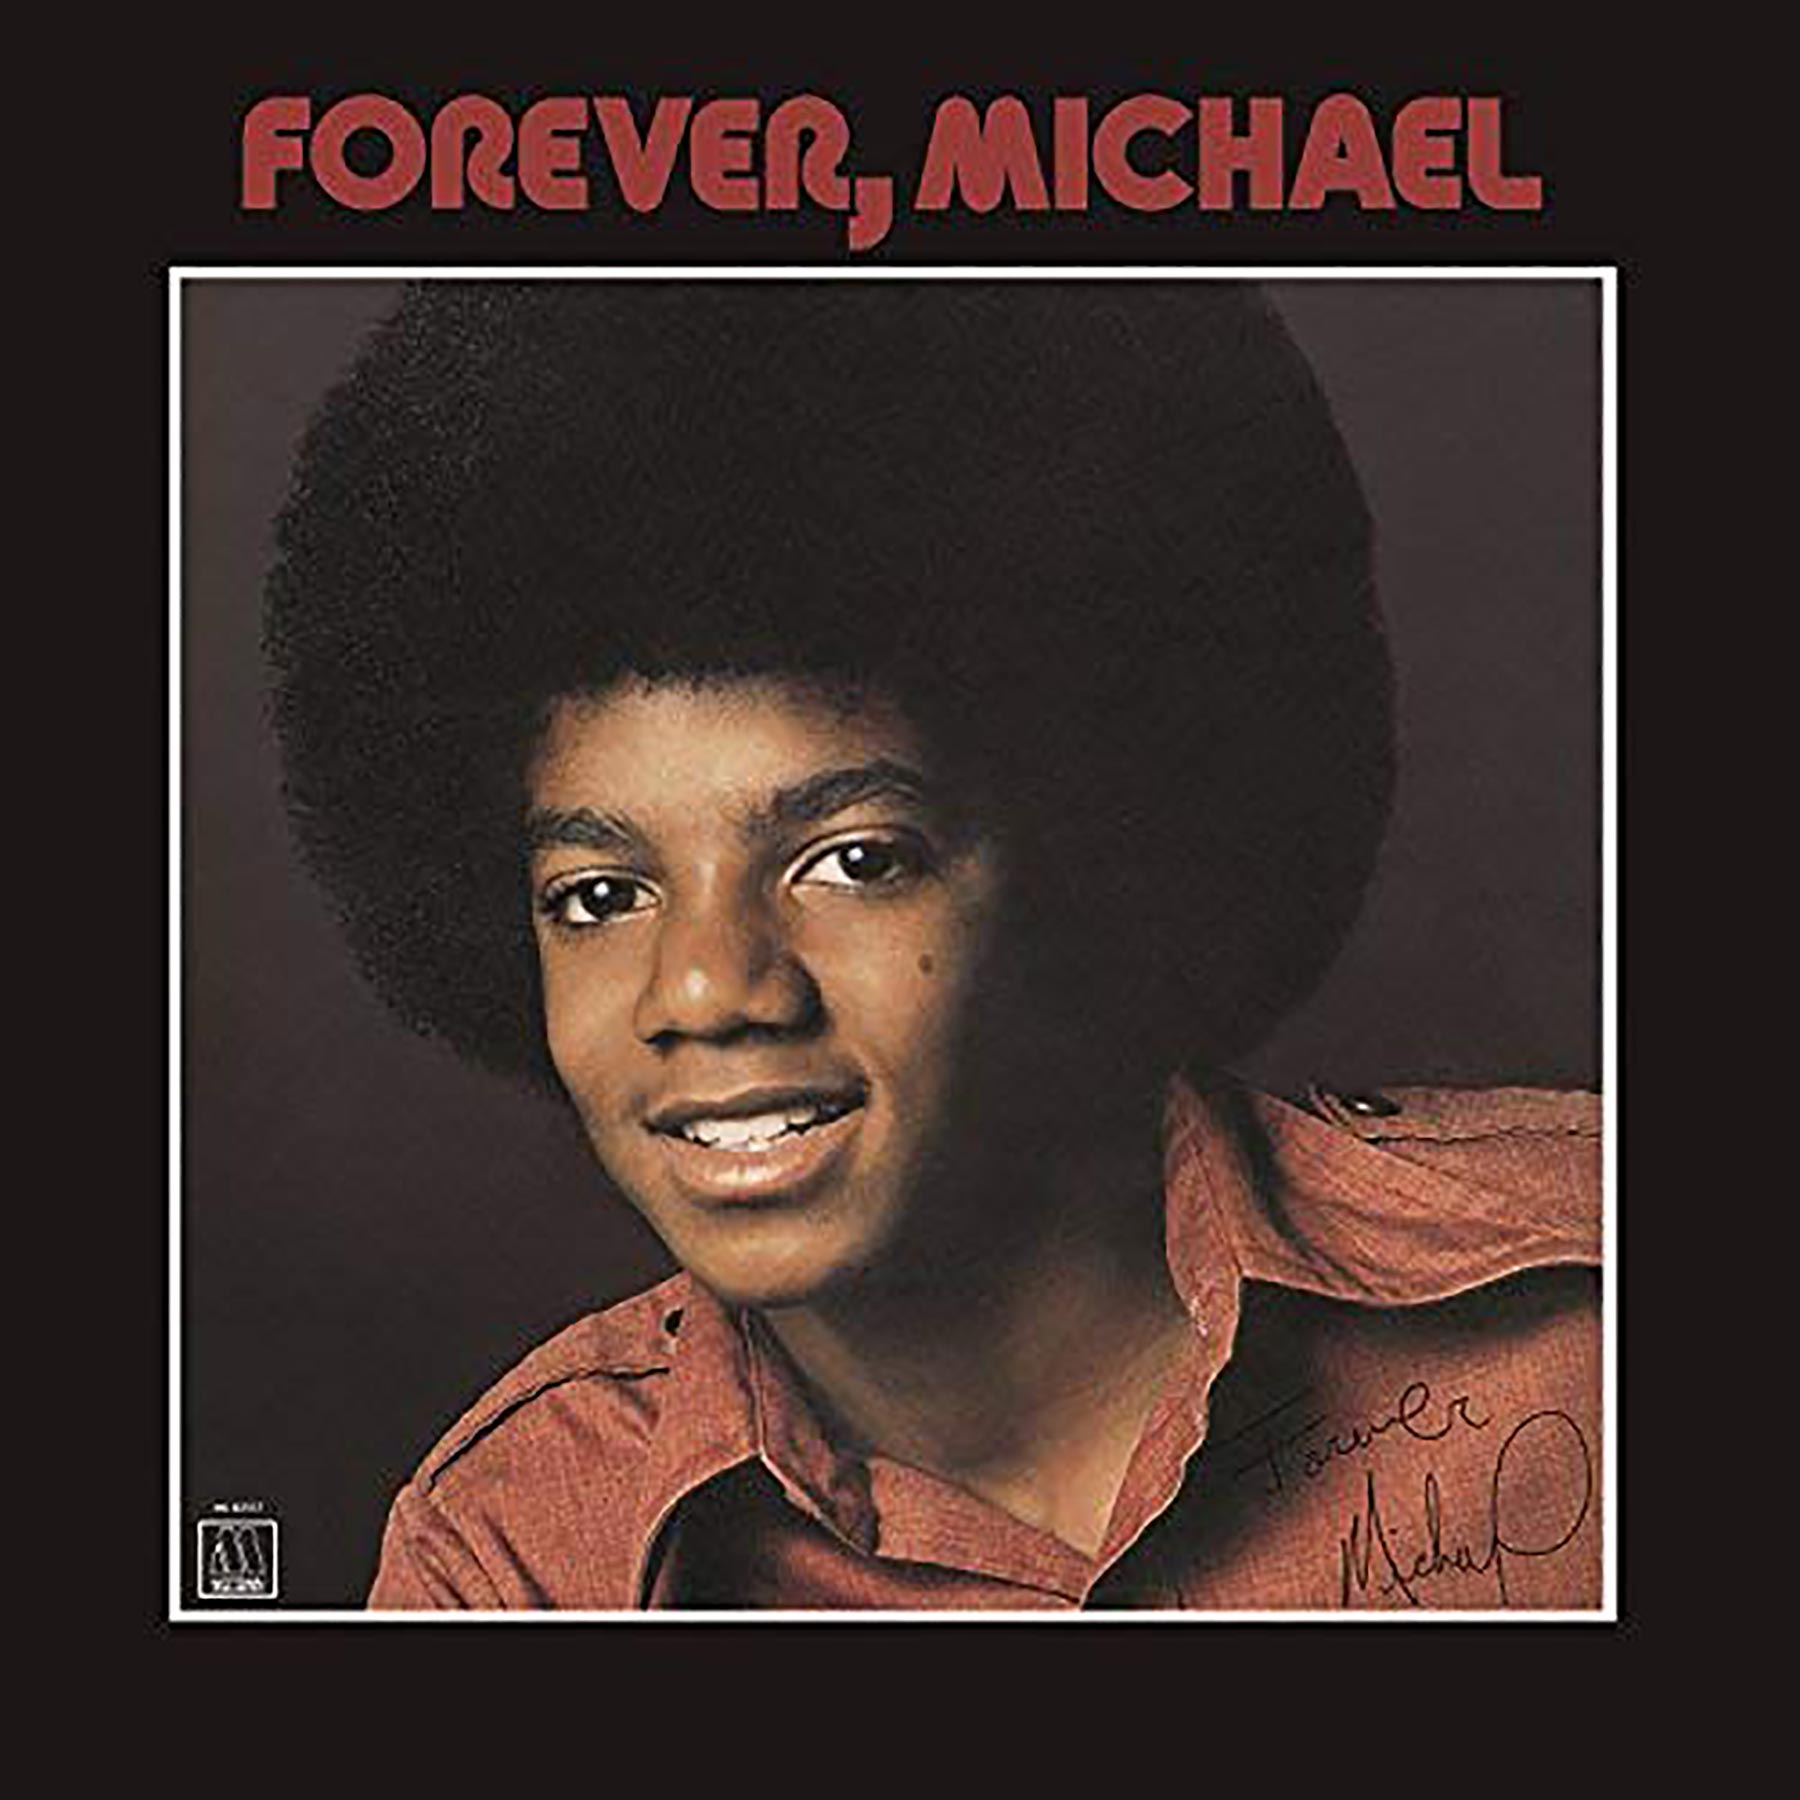 Forever, Michael (1975) by Michael Jackson